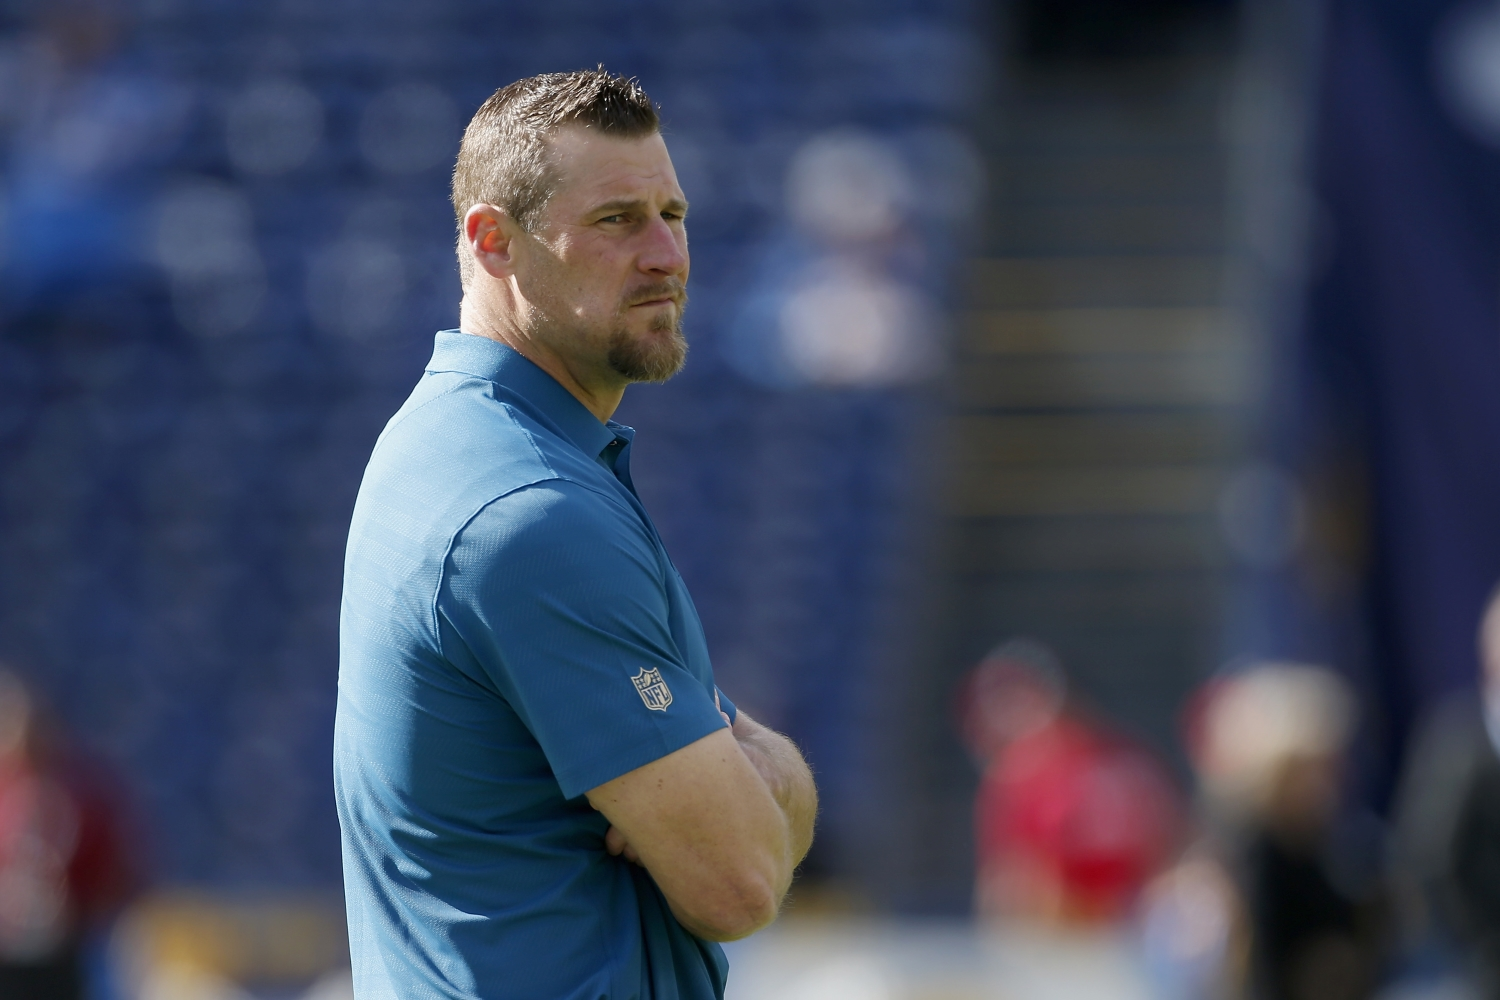 From Strategic Dumps to Sacrificing Limbs, Detroit Coach Dan Campbell Wants to Make a Pet Lion a Permanent Part of His Team